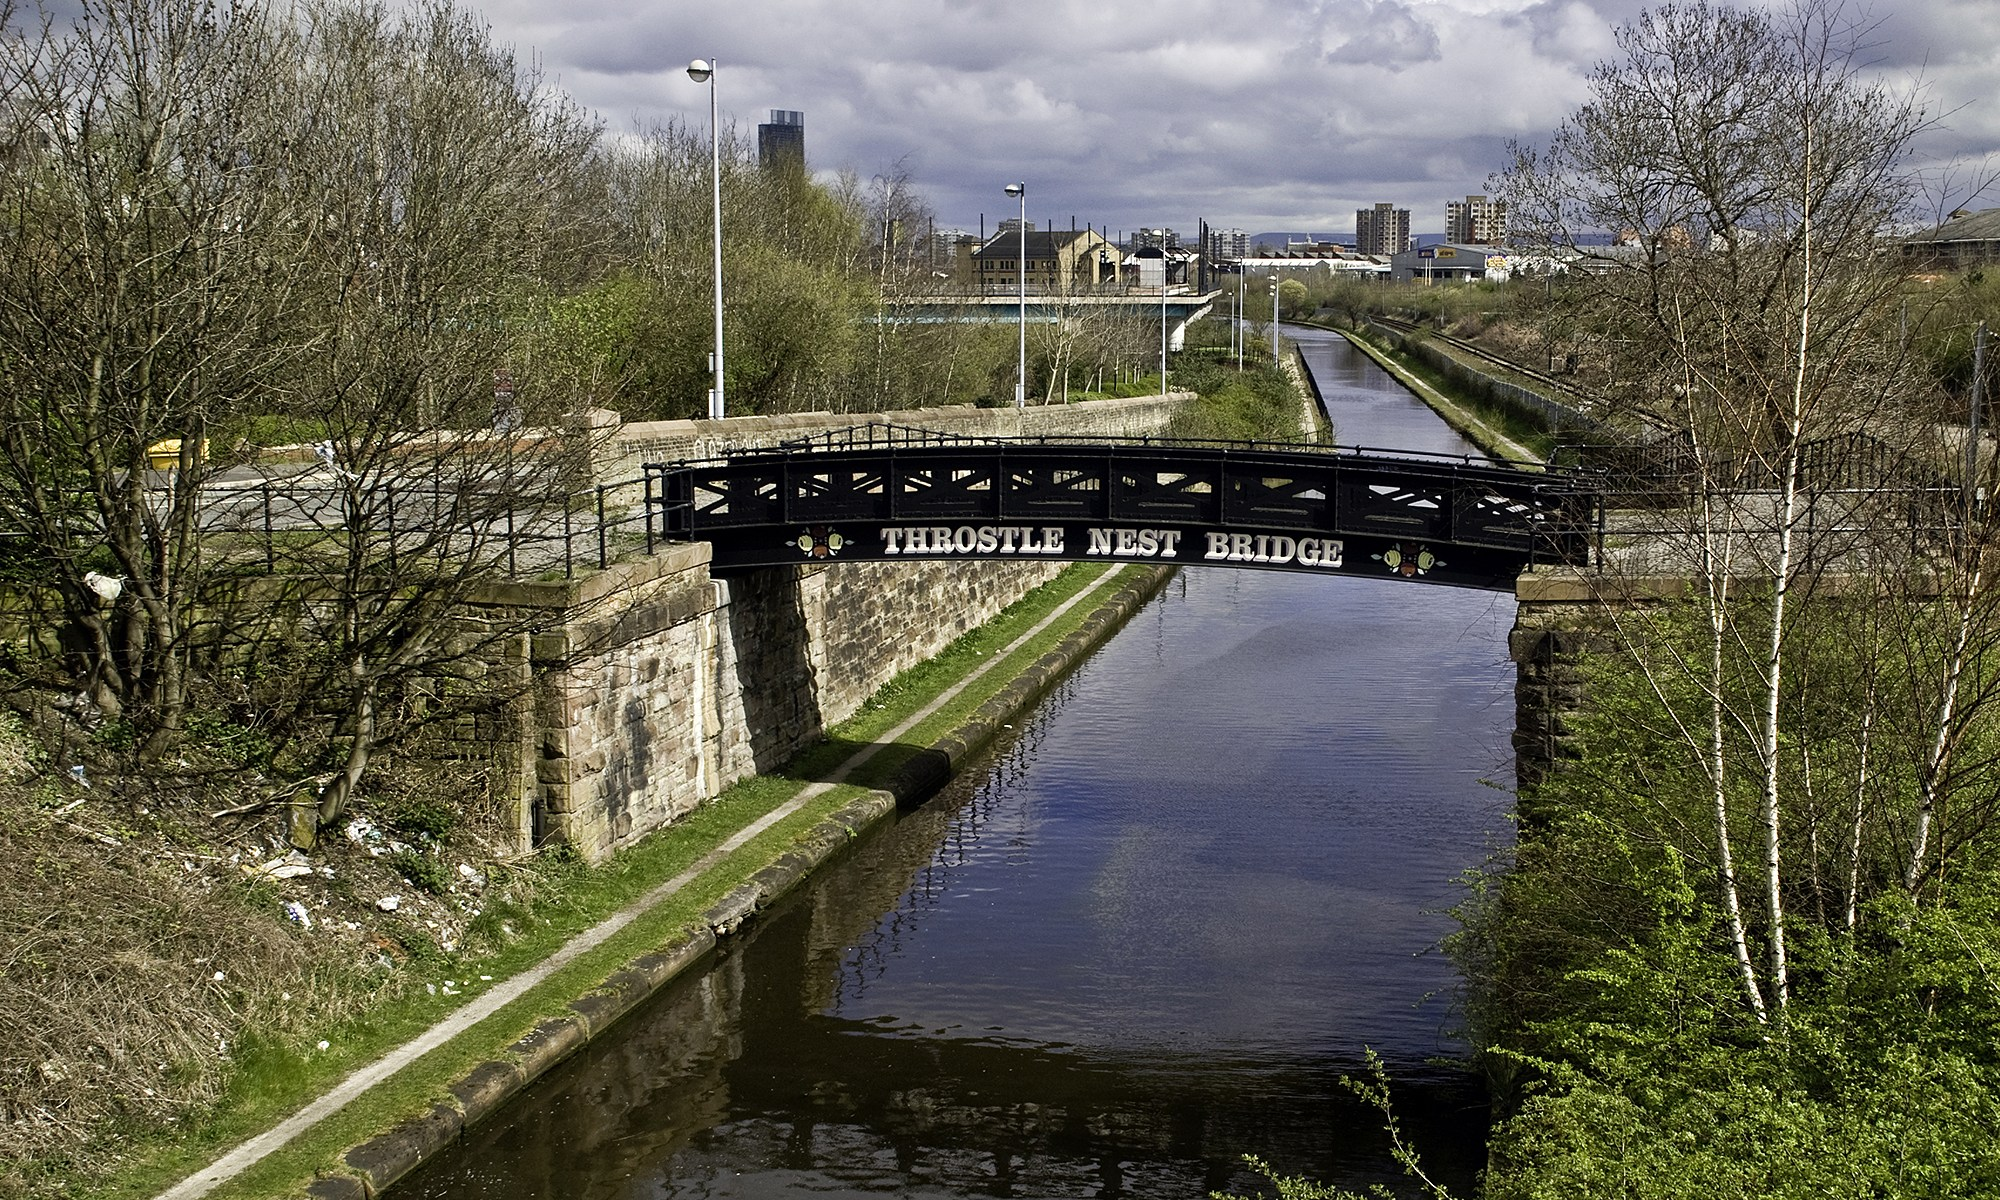 Throstle Nest Bridge, Manchester